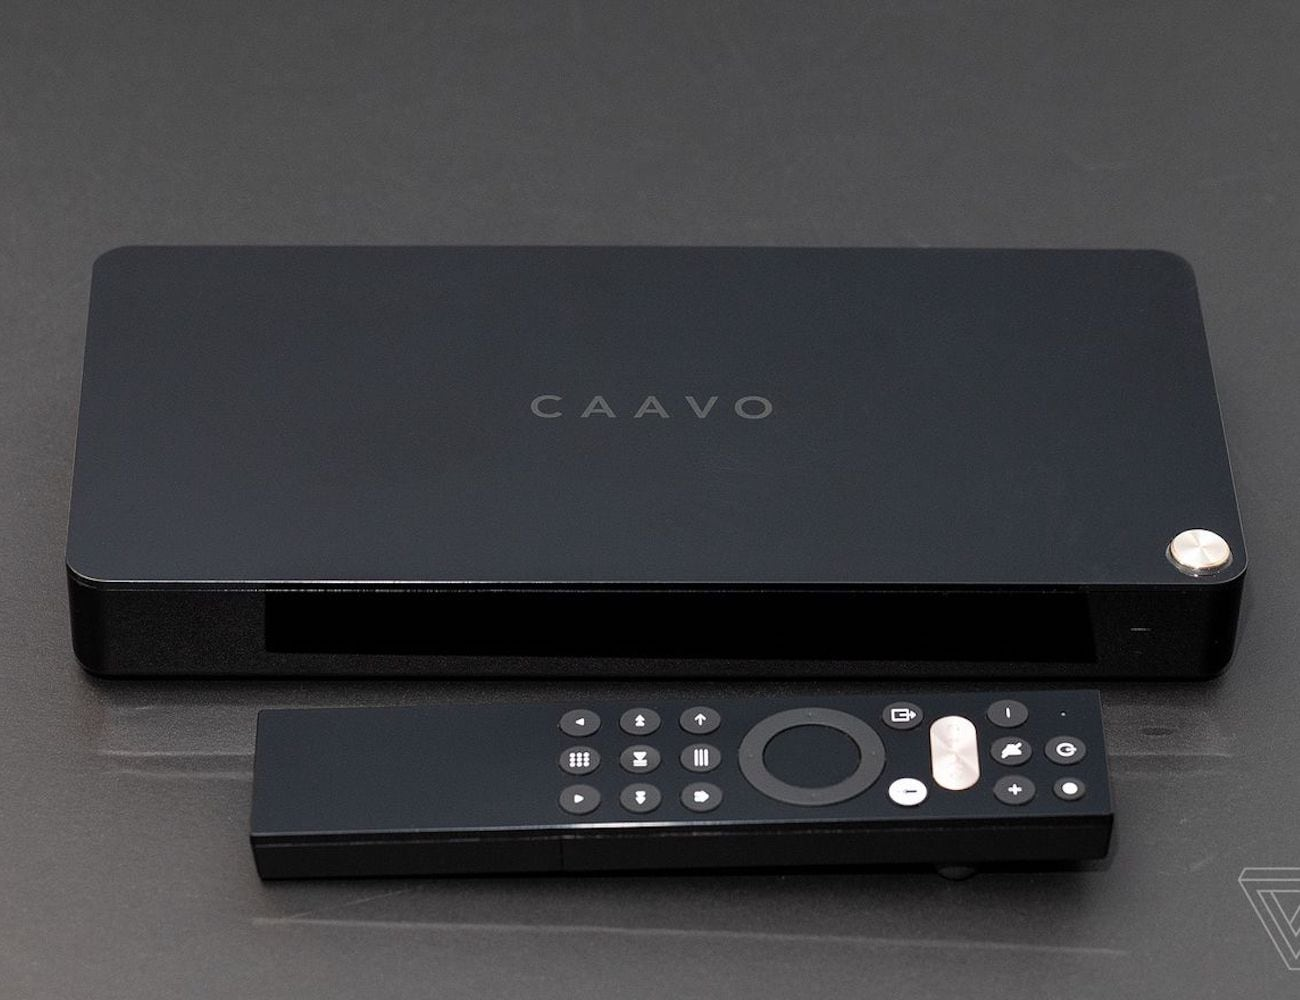 Caavo Control Center Home Theater Hub offers universal control